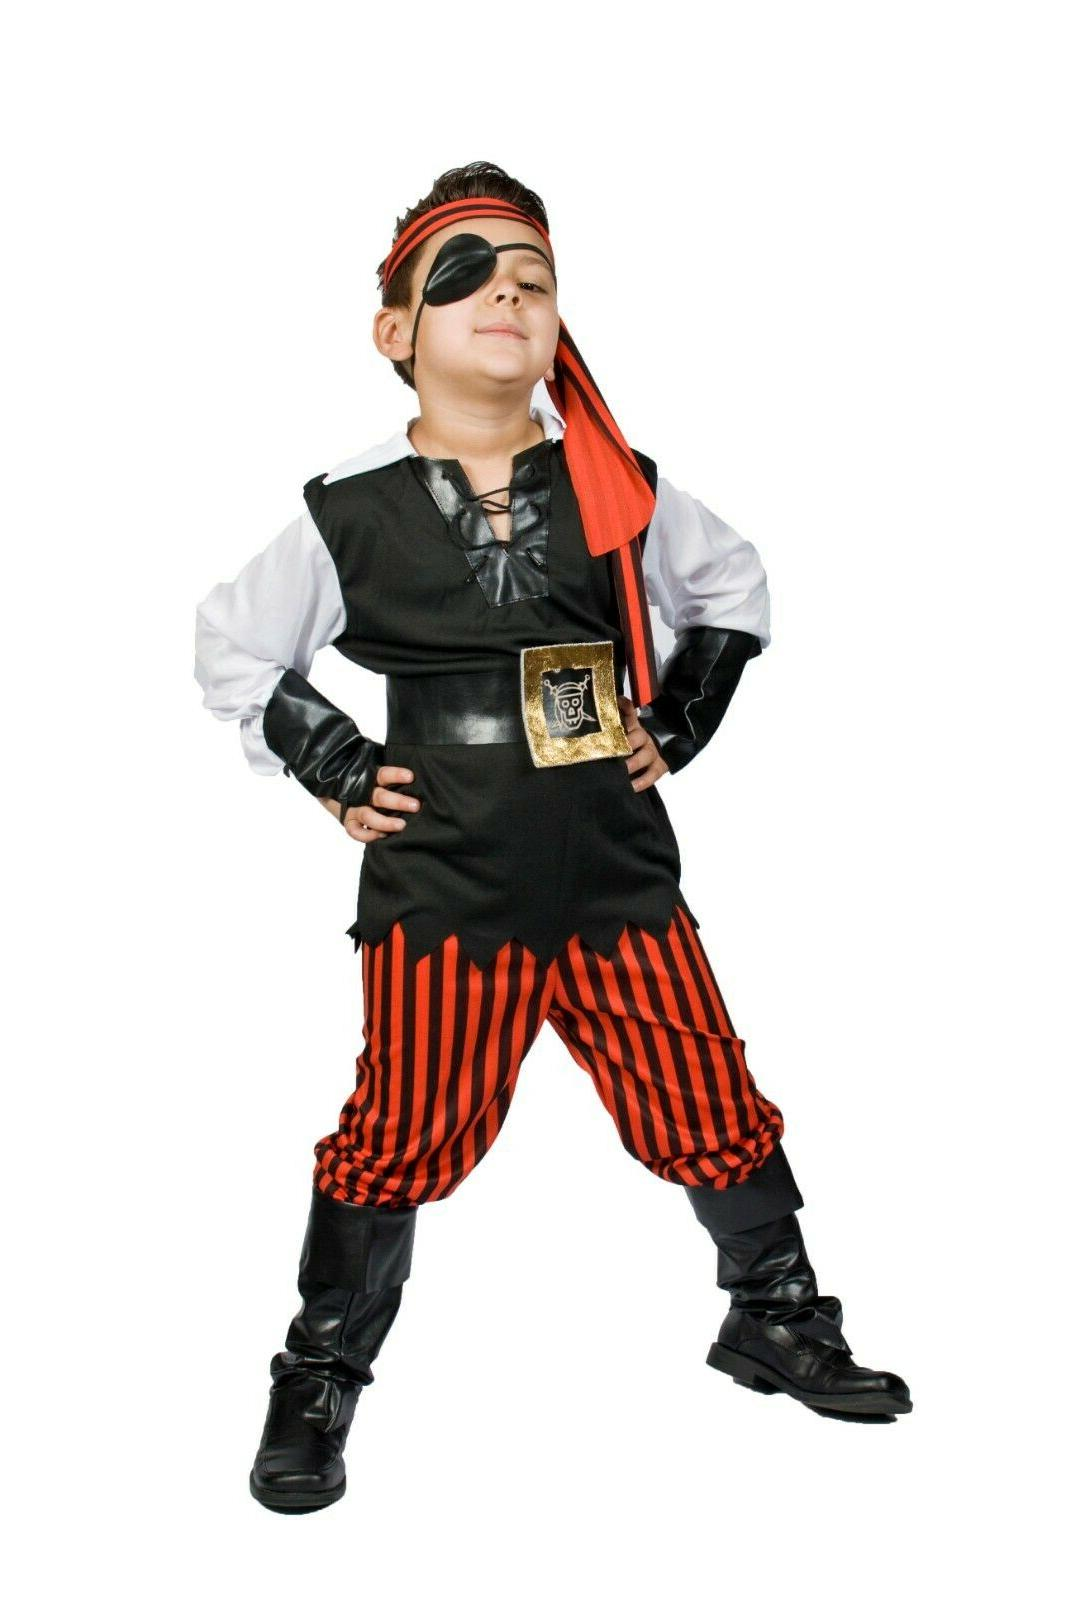 Pirate Costume boys buccaneer Size 5,6,7,8 Ahoy Matey!